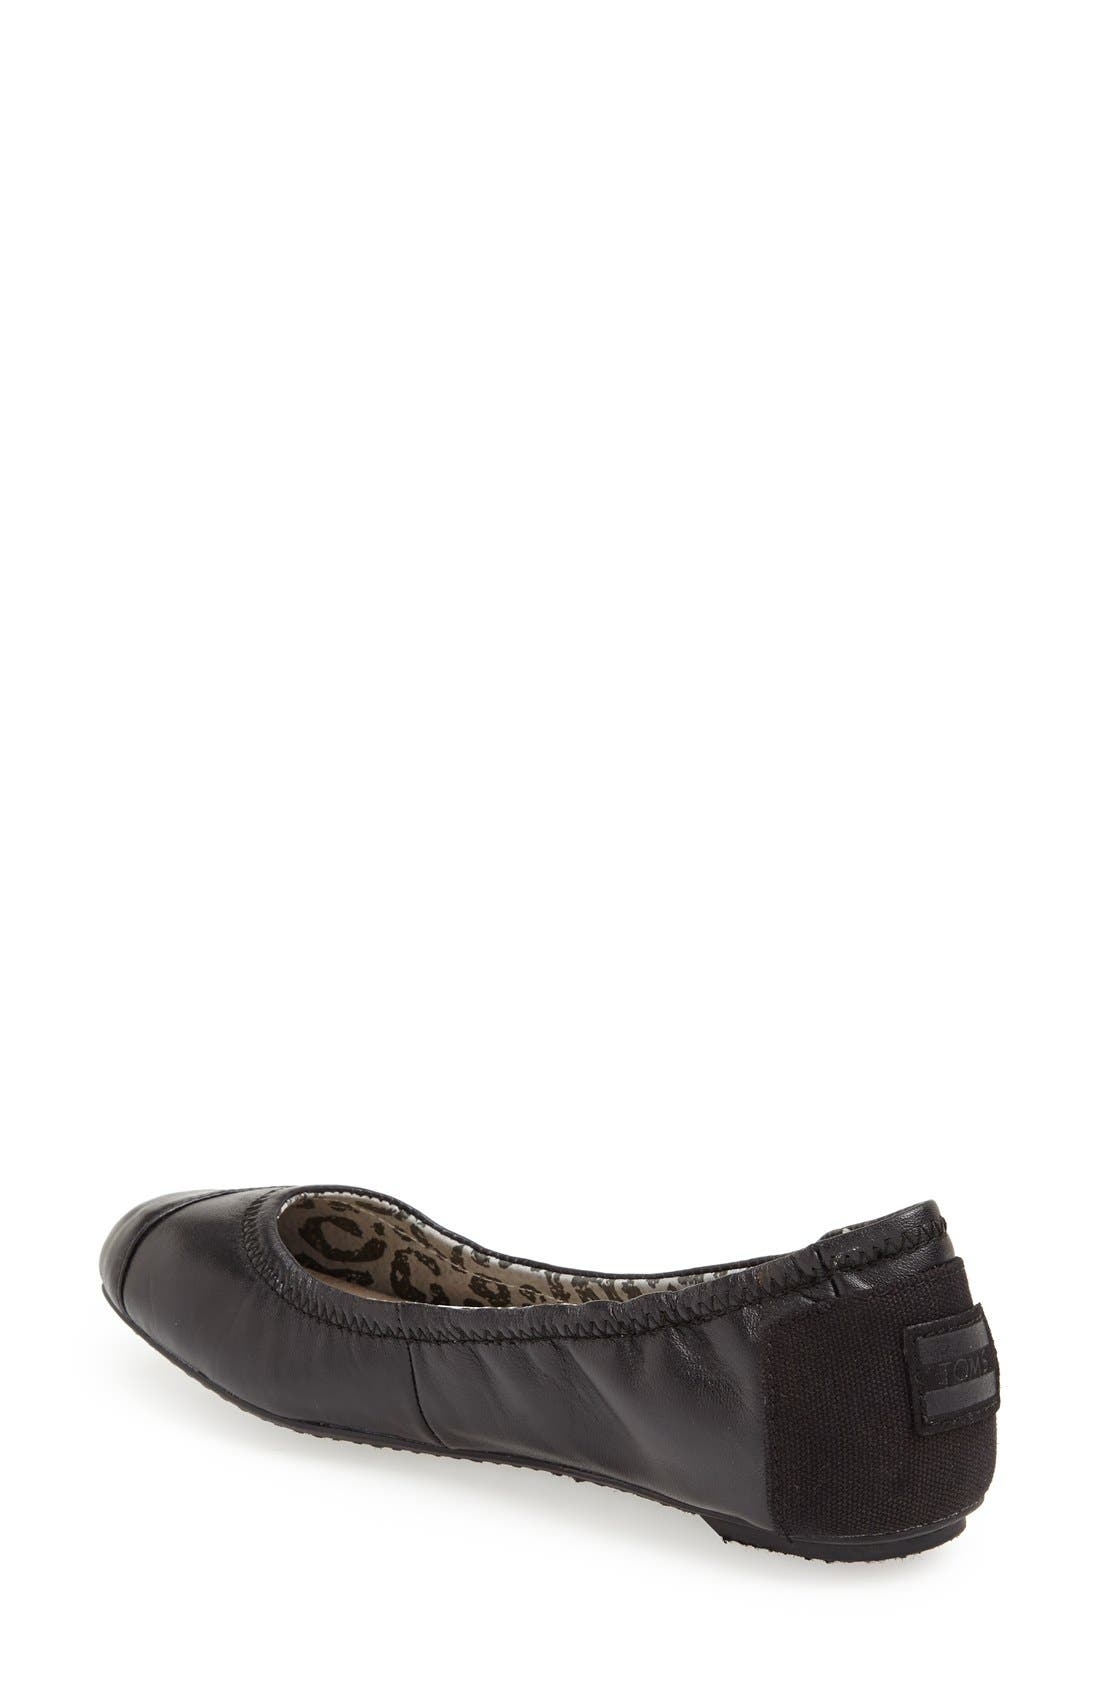 Alternate Image 2  - TOMS 'Camila' Ballet Flat (Women)